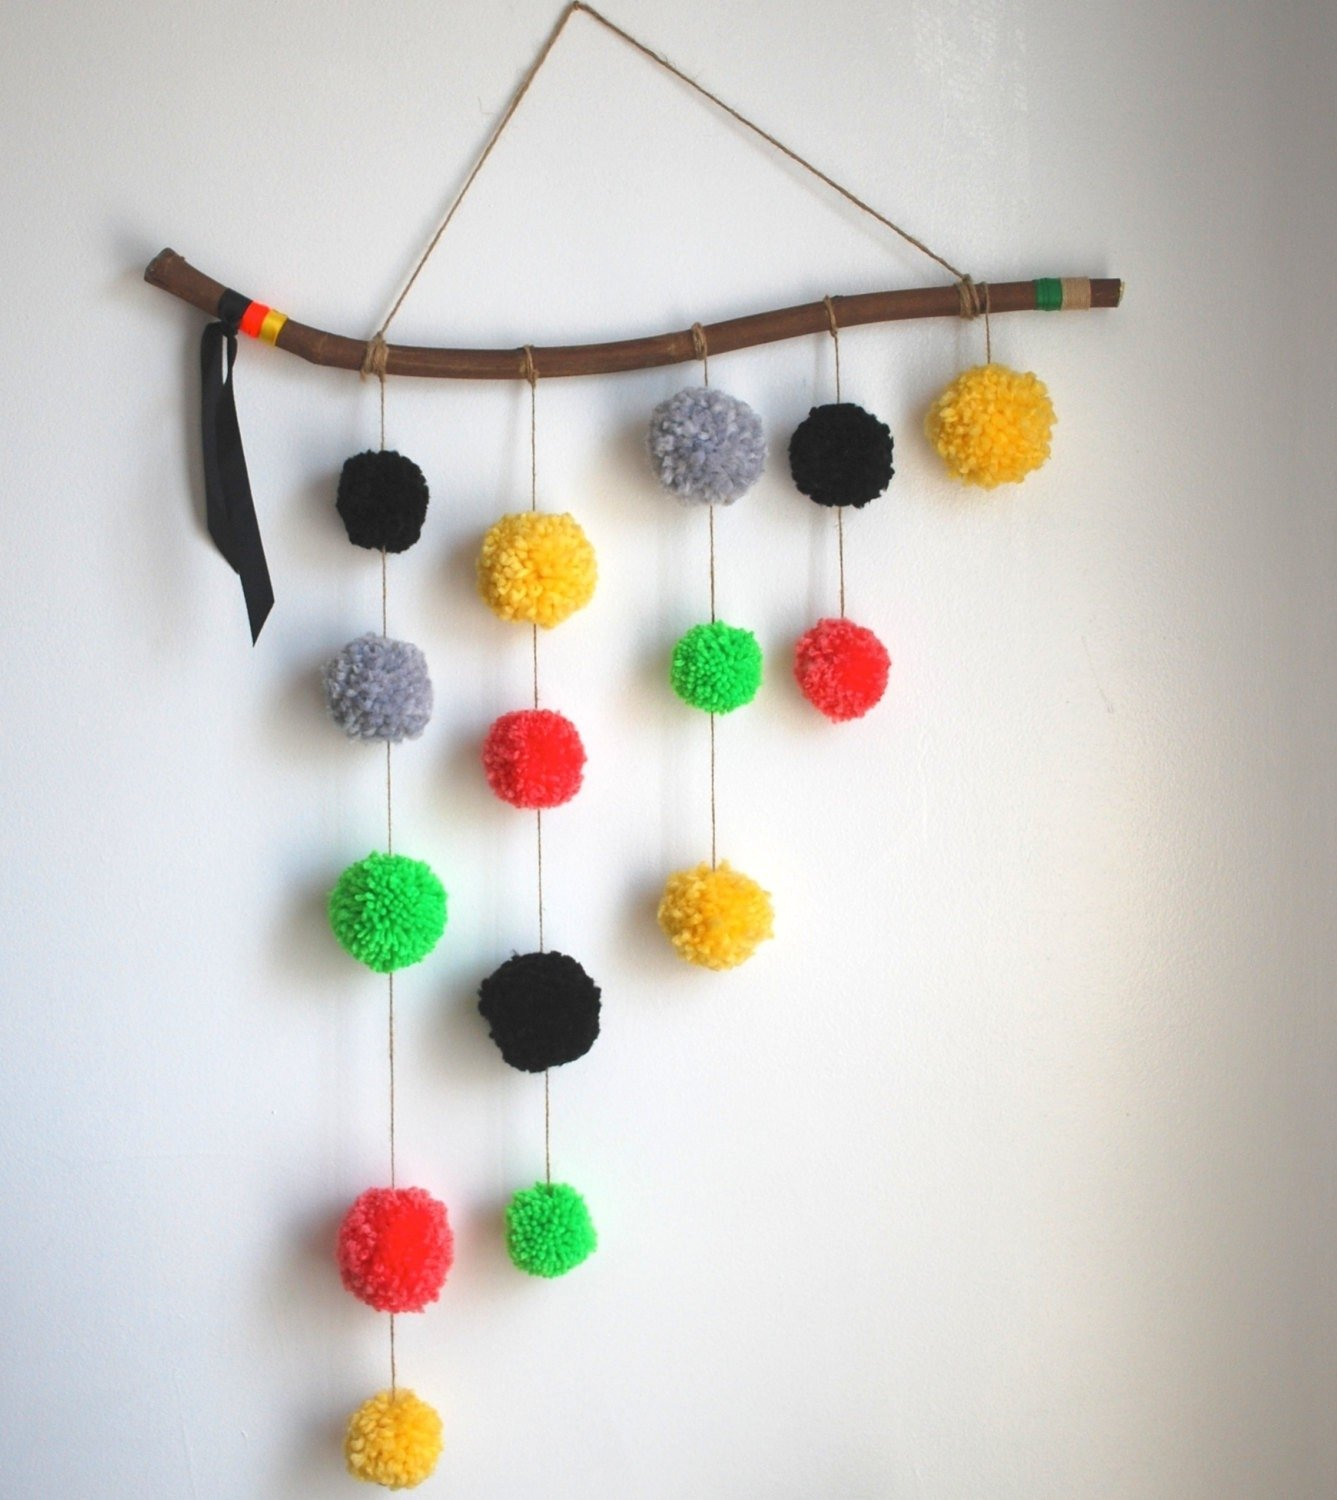 10 Attractive Ideas For Hanging Pictures On Walls wall arts art hanging ideas and do it yourself teen amazon 2020